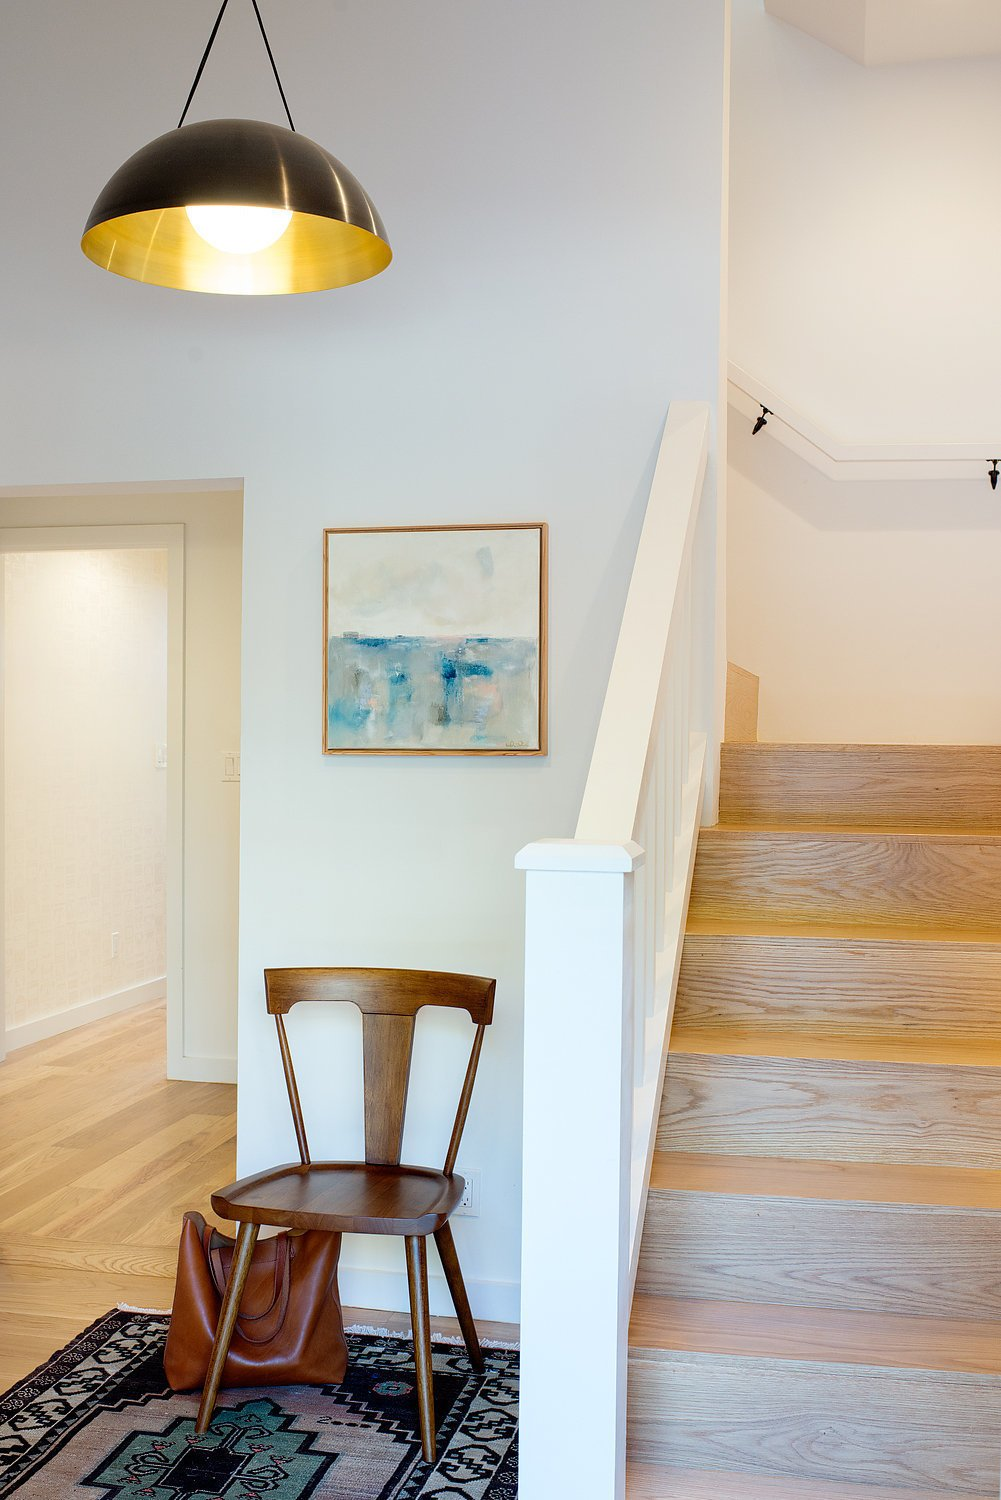 The ground floor entry was once a mix and match of different flooring materials and floor level heights. All the details were though out to create a functional, one-level space with new white oak flooring and stair treads to match the upstairs rooms.